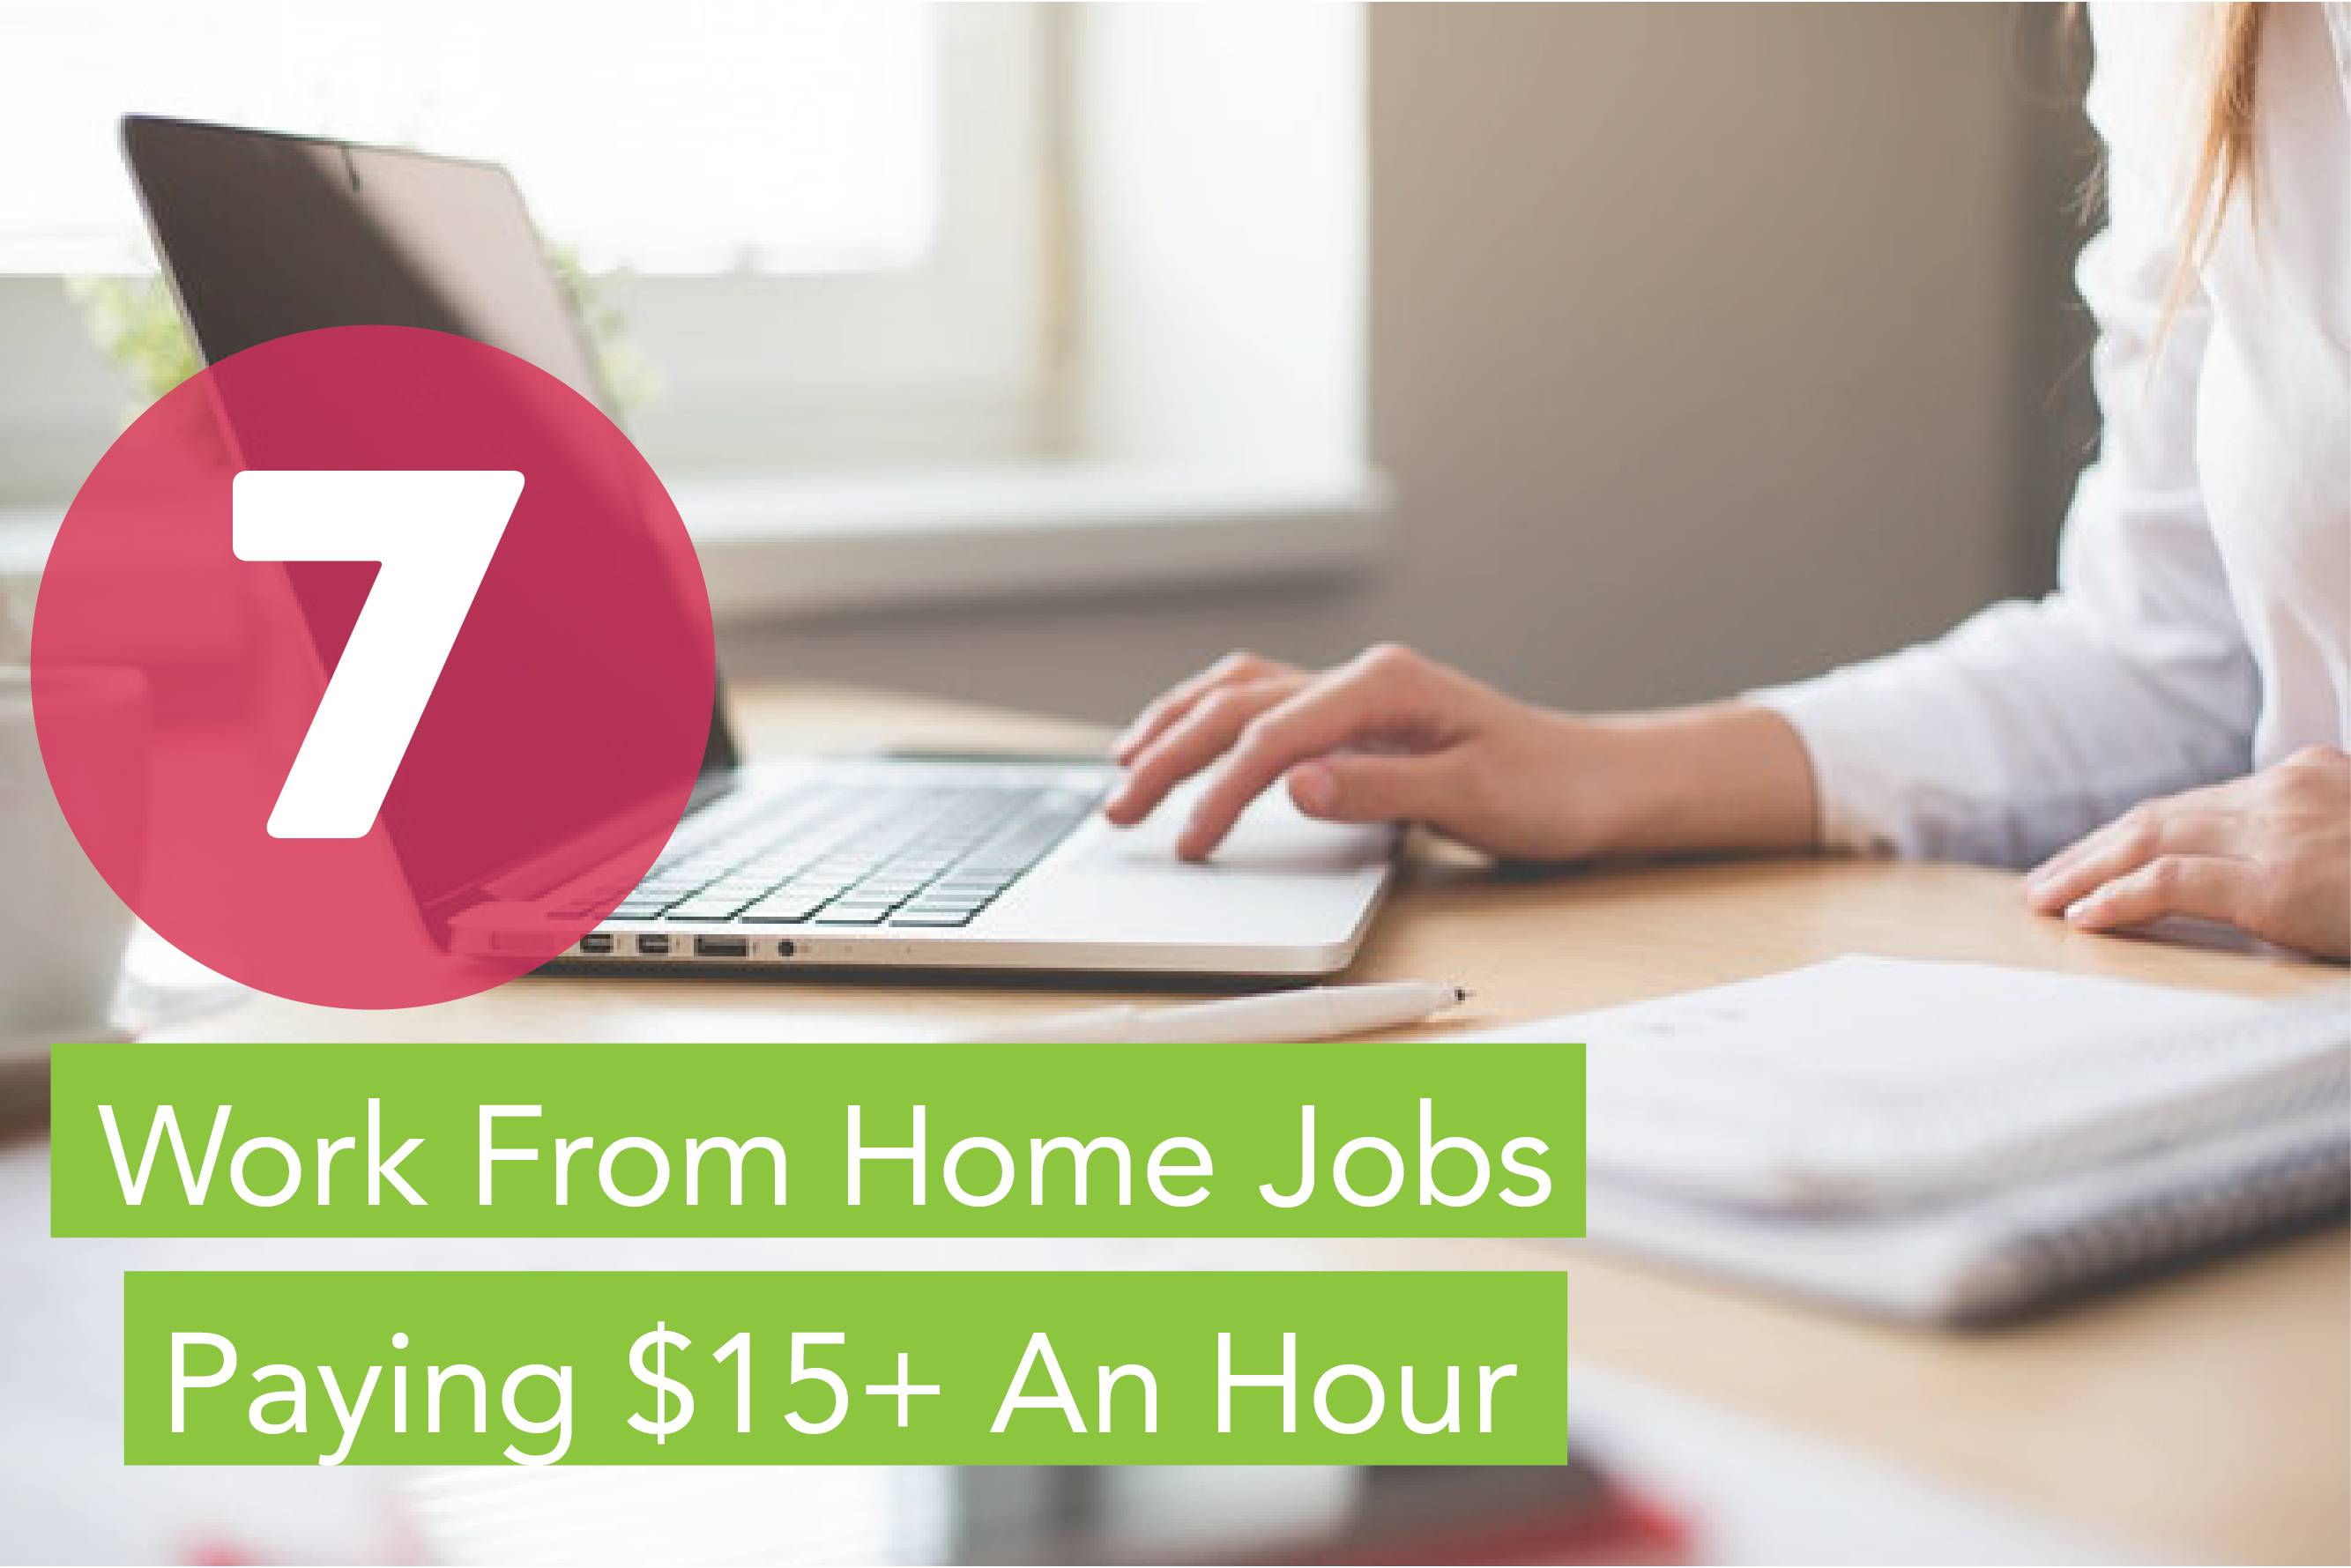 Work From Home Jobs On Your Own Time